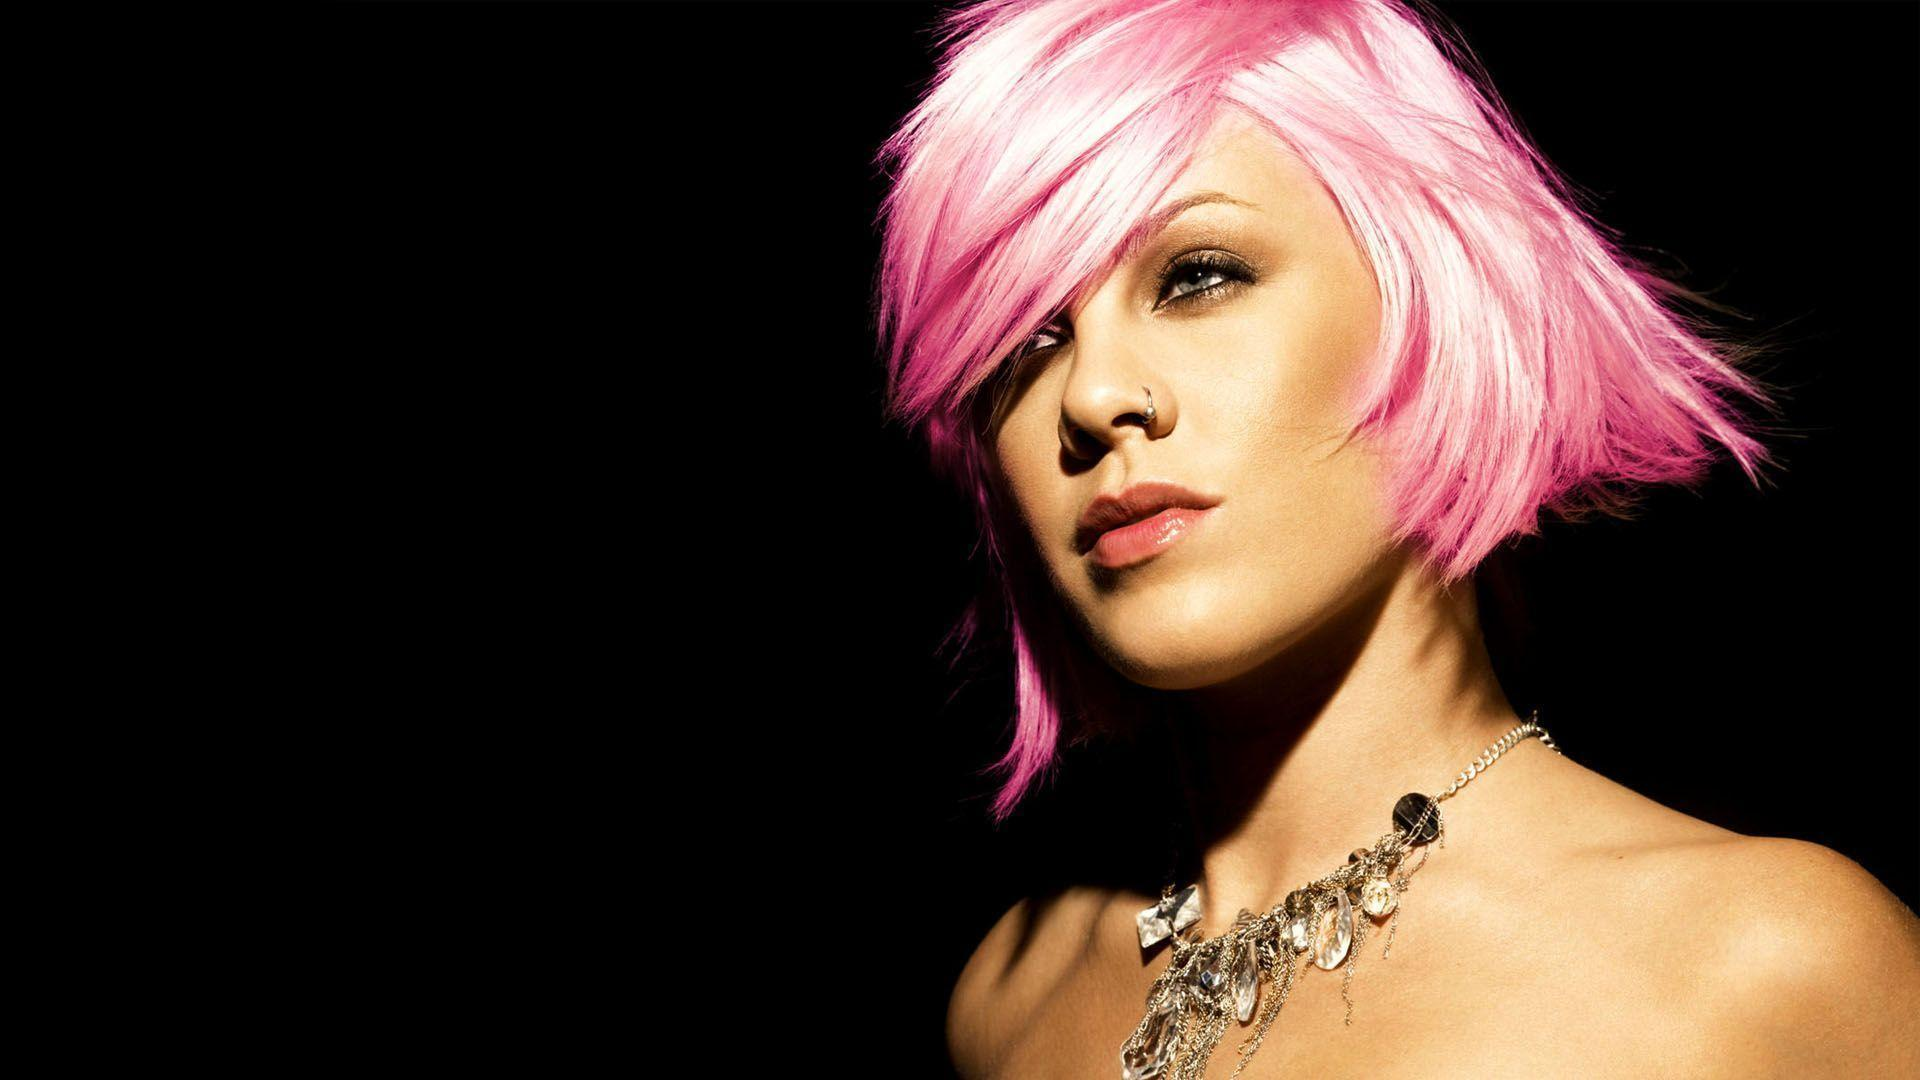 P nk Pink HD Wallpapers 1920x1080